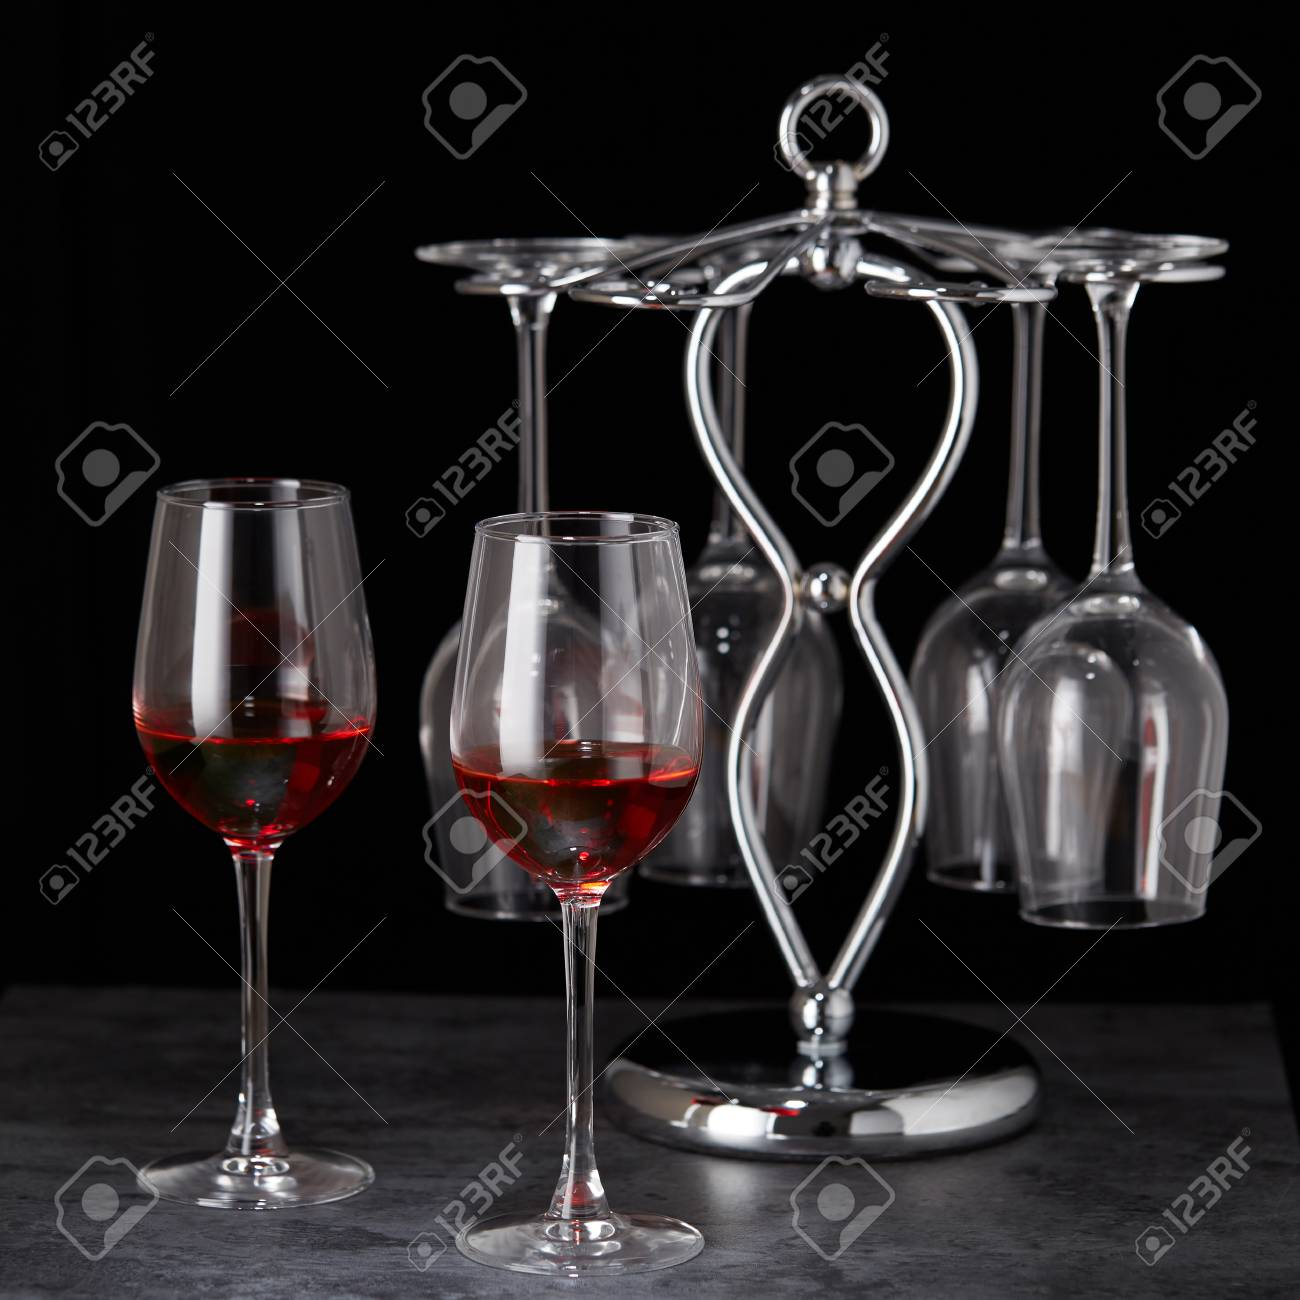 Decanter Wine Glas Glass Wine Glass Decanter